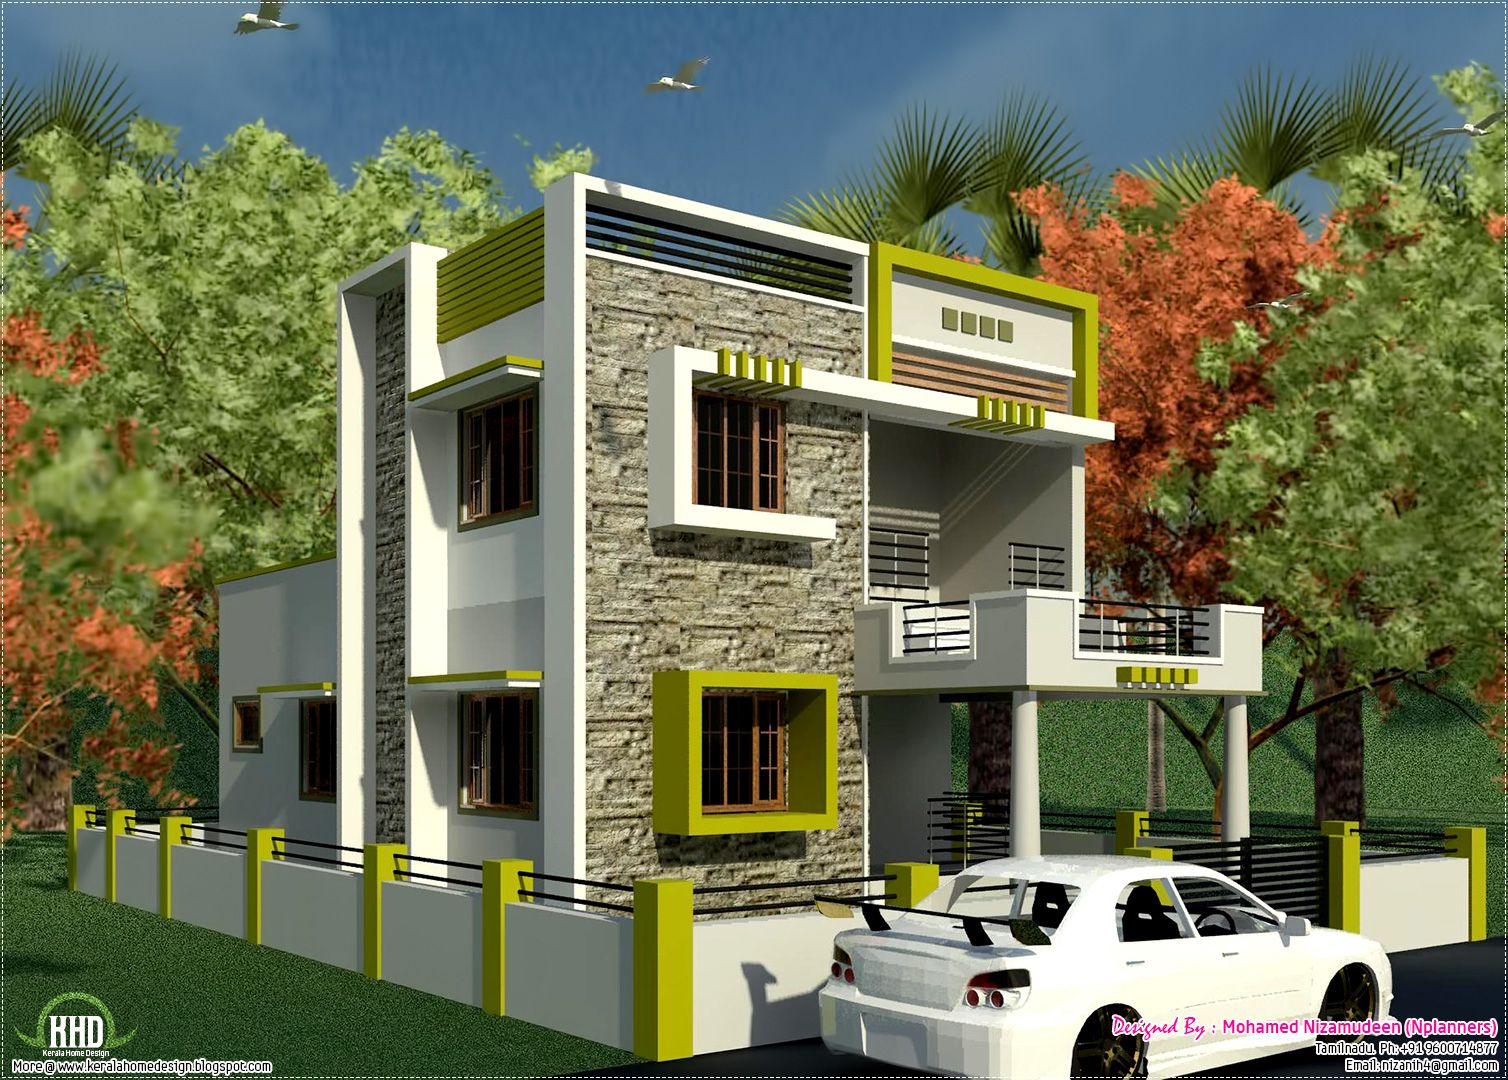 Small house with car park design tobfav com ideas for Pictures of exterior home designs in india